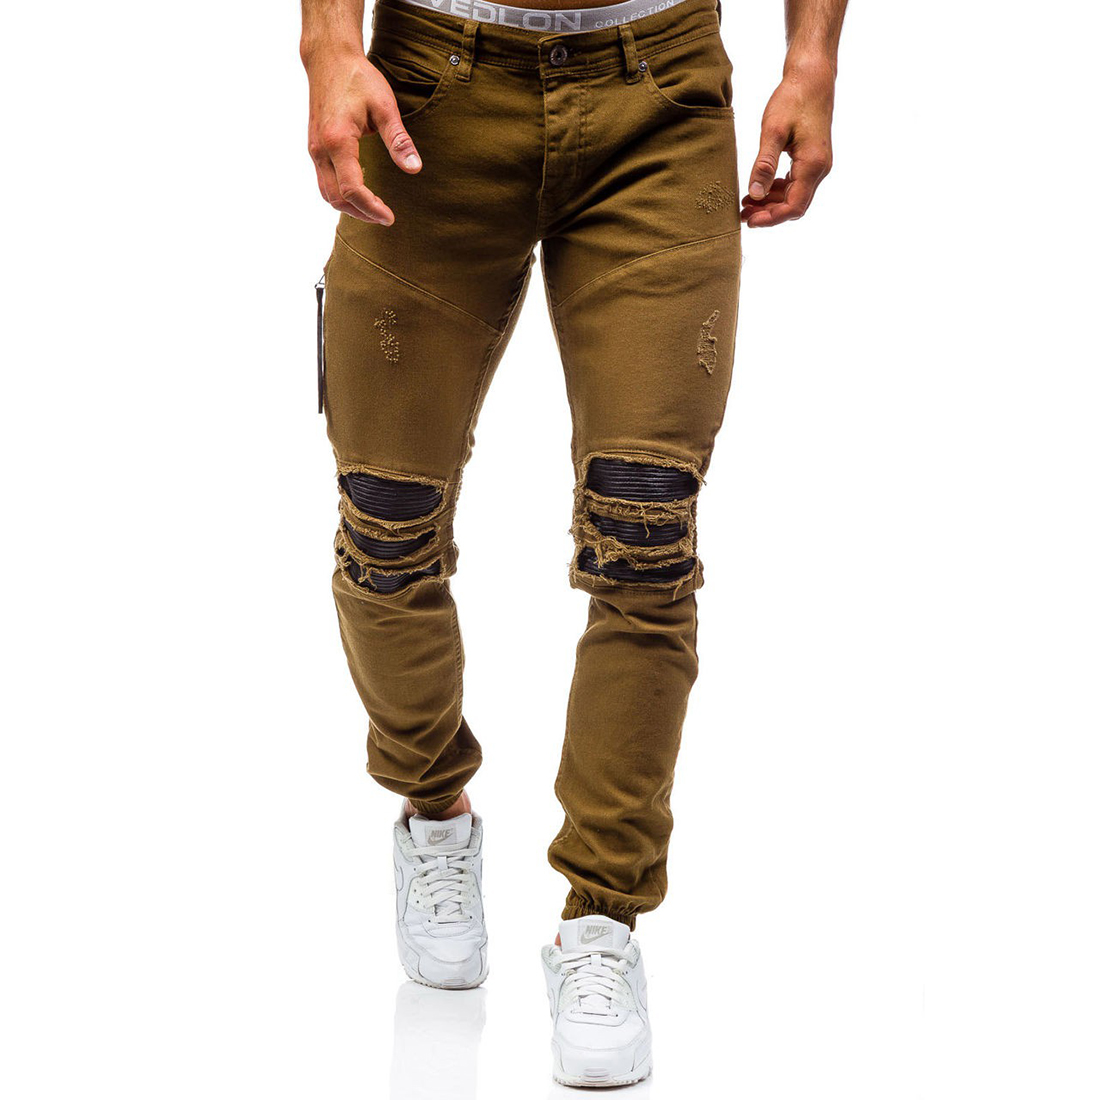 2018 New MenS Jeans Ripped Beggar Holes Pants Korean Style Elasticity Casual Trousers Cool Stretch Man Denim Pants 38